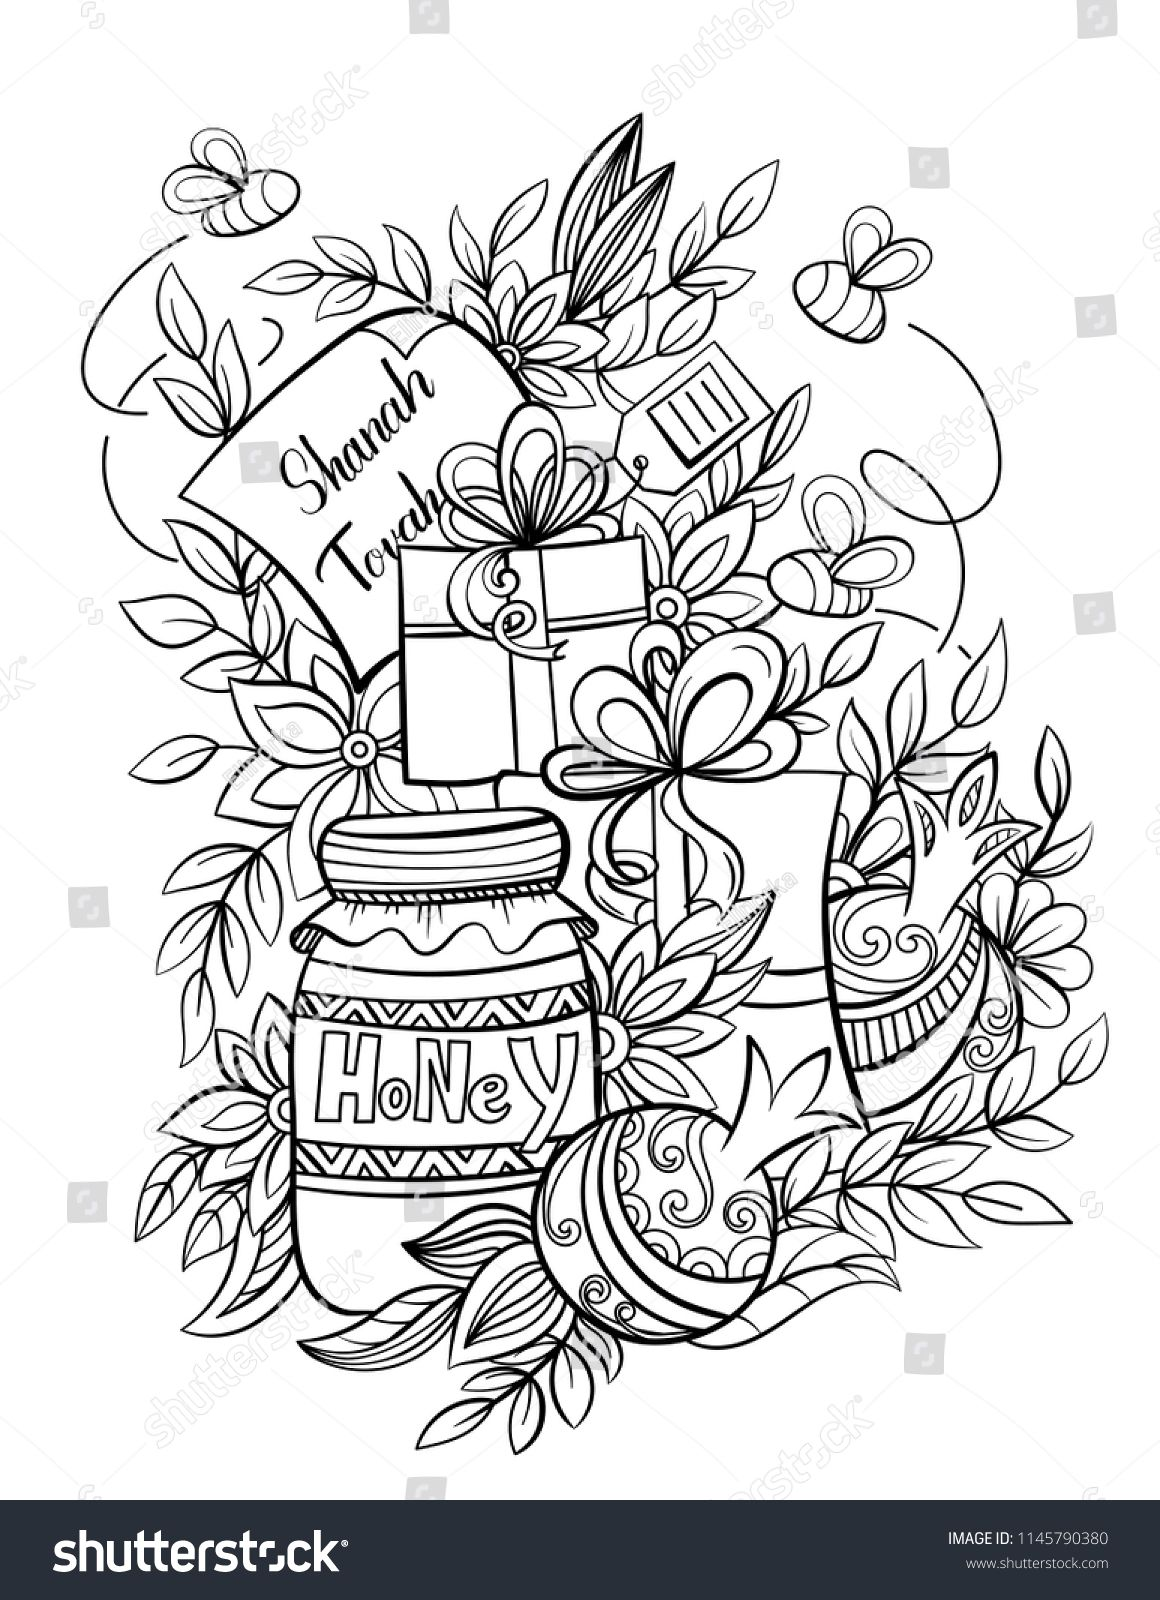 Rosh Hashanah Jewish New Year Coloring Page With Apples Honey Pomegranates And Holiday Gifts Black A Coloring Books Coloring Pages New Year Coloring Pages